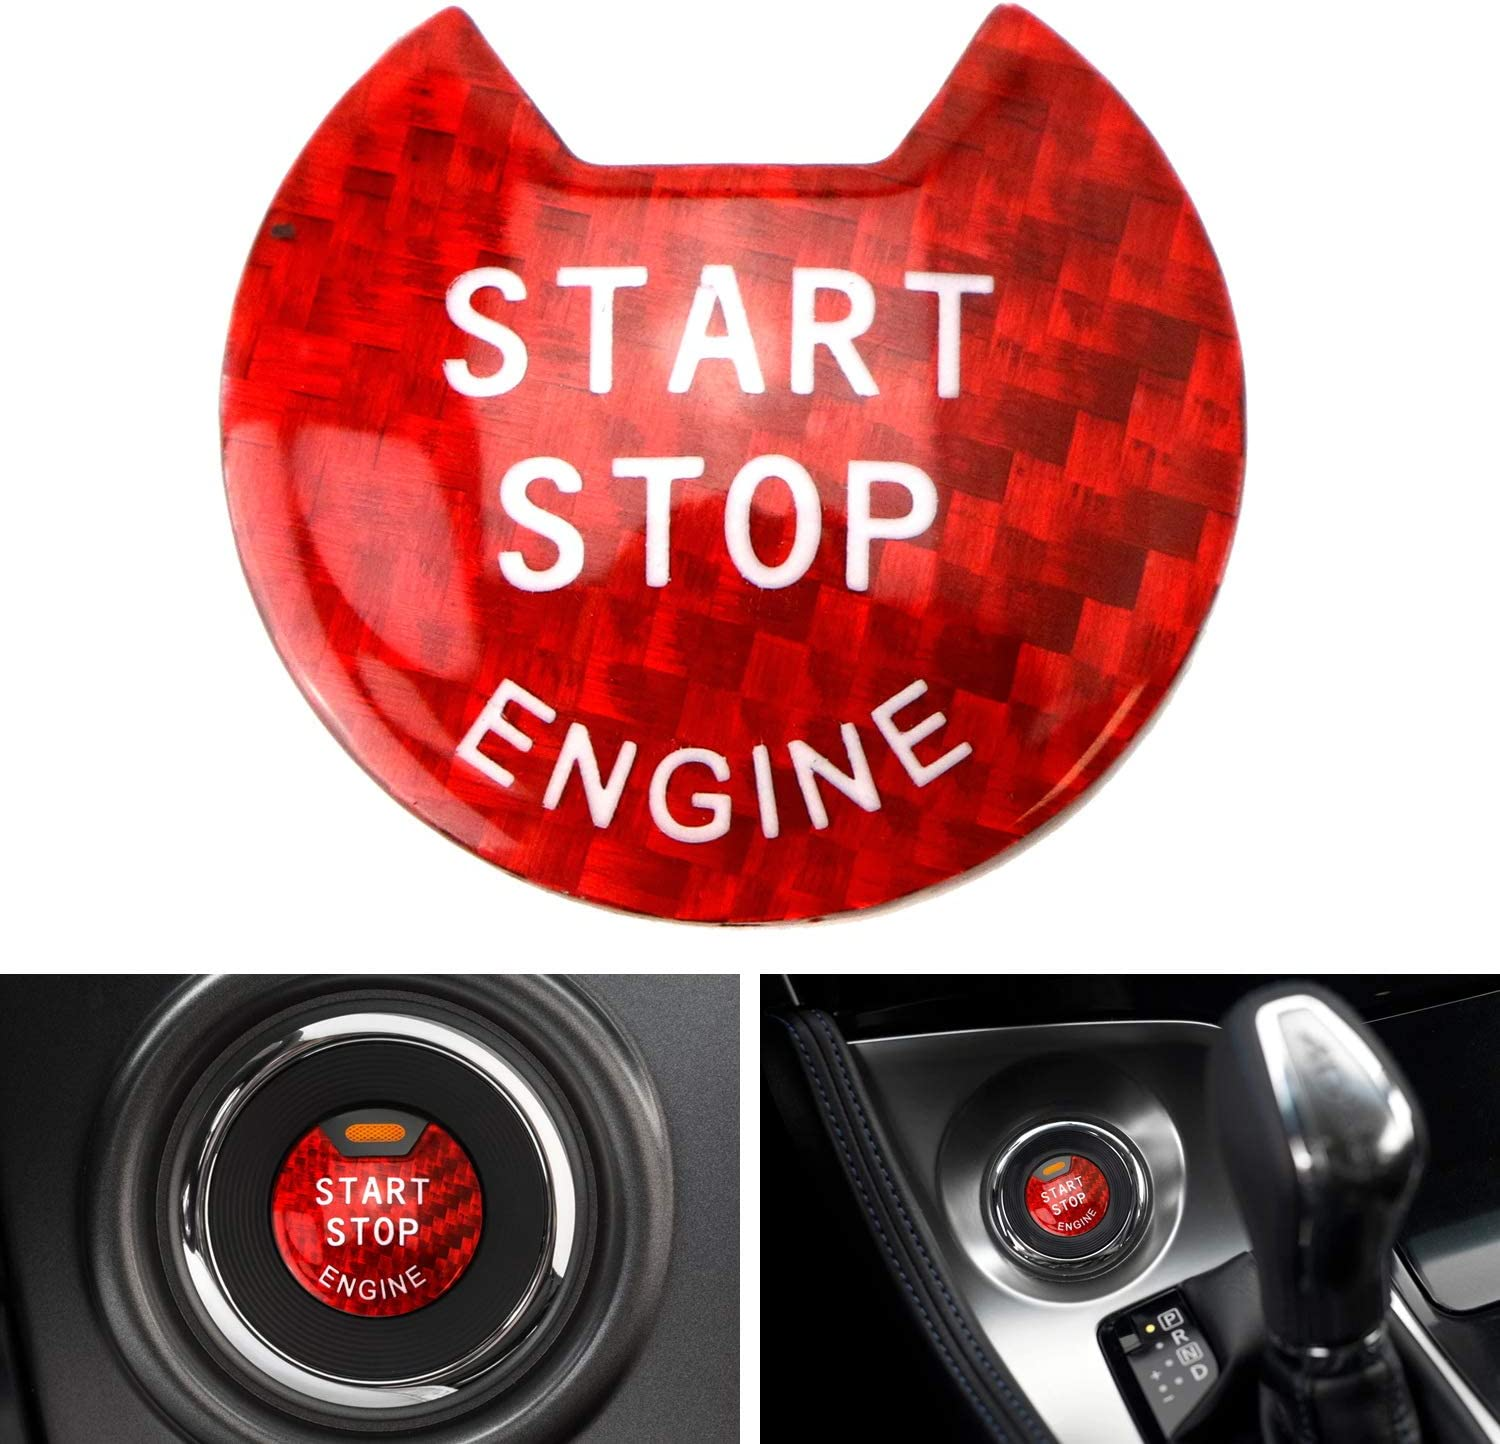 iJDMTOY 1 Gloss Red Real Carbon Fiber Keyless Engine Start//Stop Push Start Button Cover Compatible With Nissan Altima Maxima Pathfinder Titan Murano Infiniti Q50 Q60 QX60.